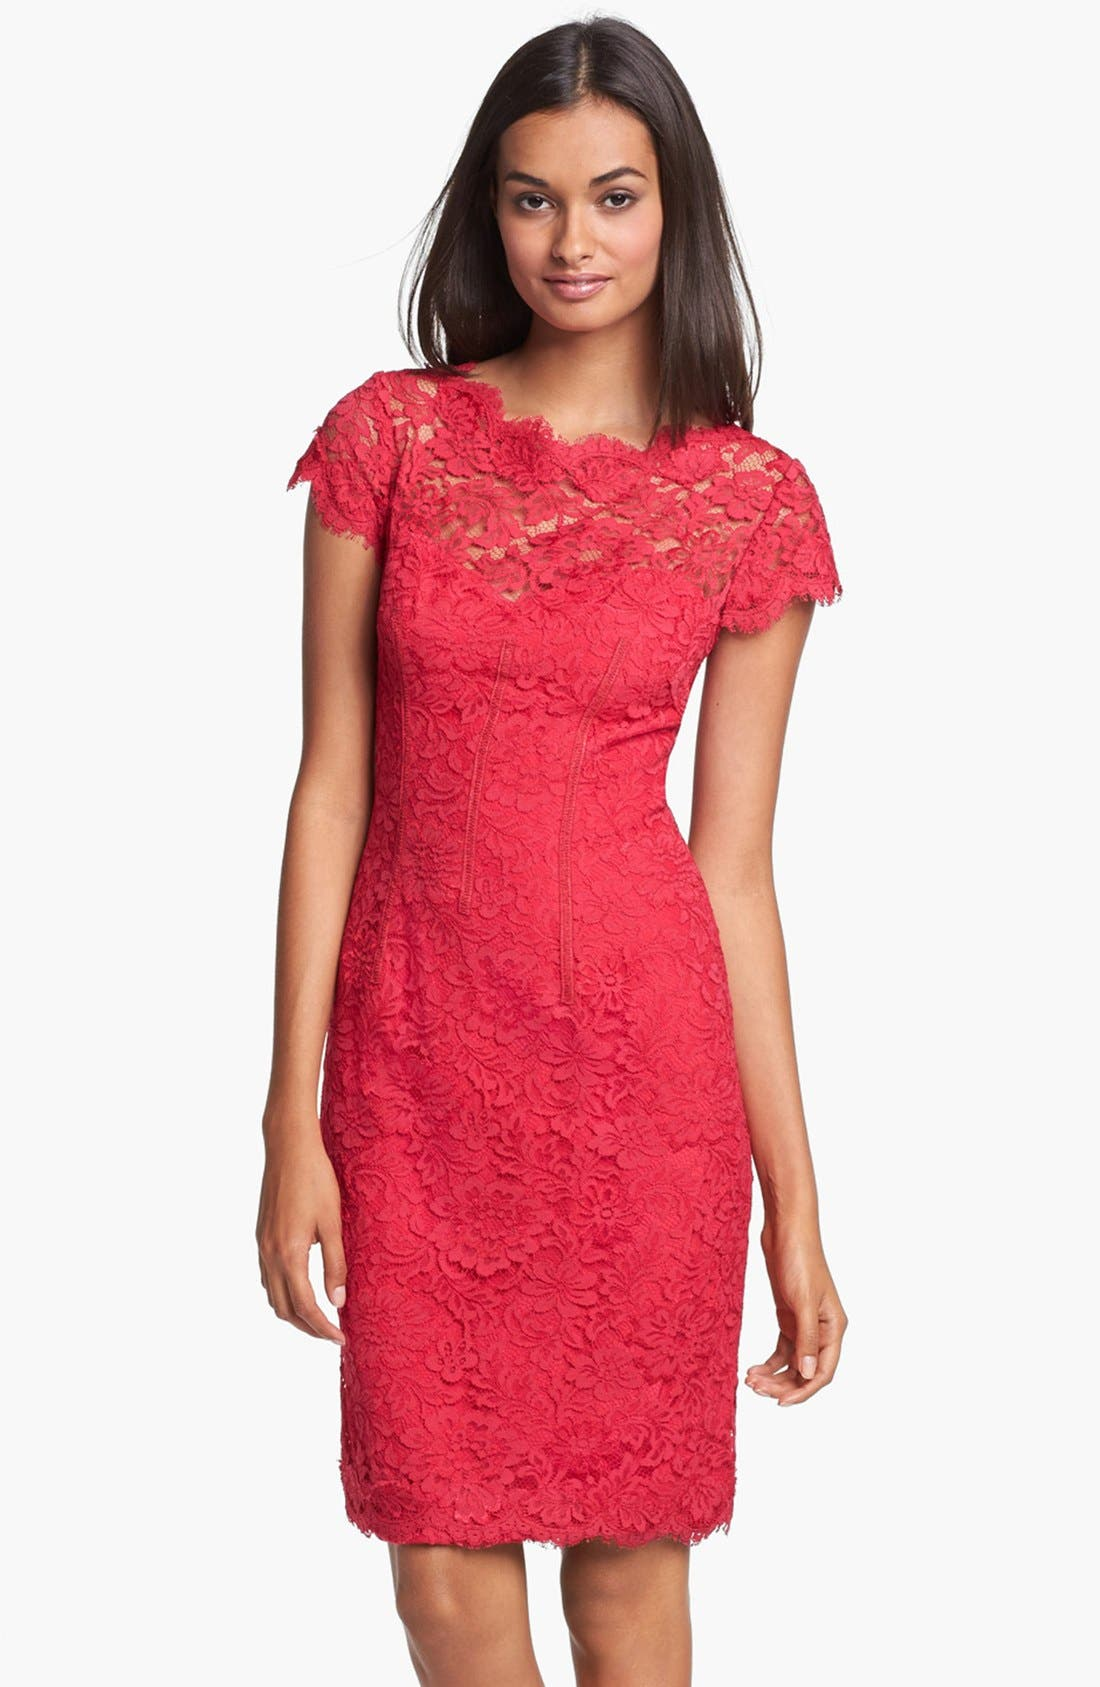 Alternate Image 1 Selected - ML Monique Lhuillier Lace Overlay Sheath Dress